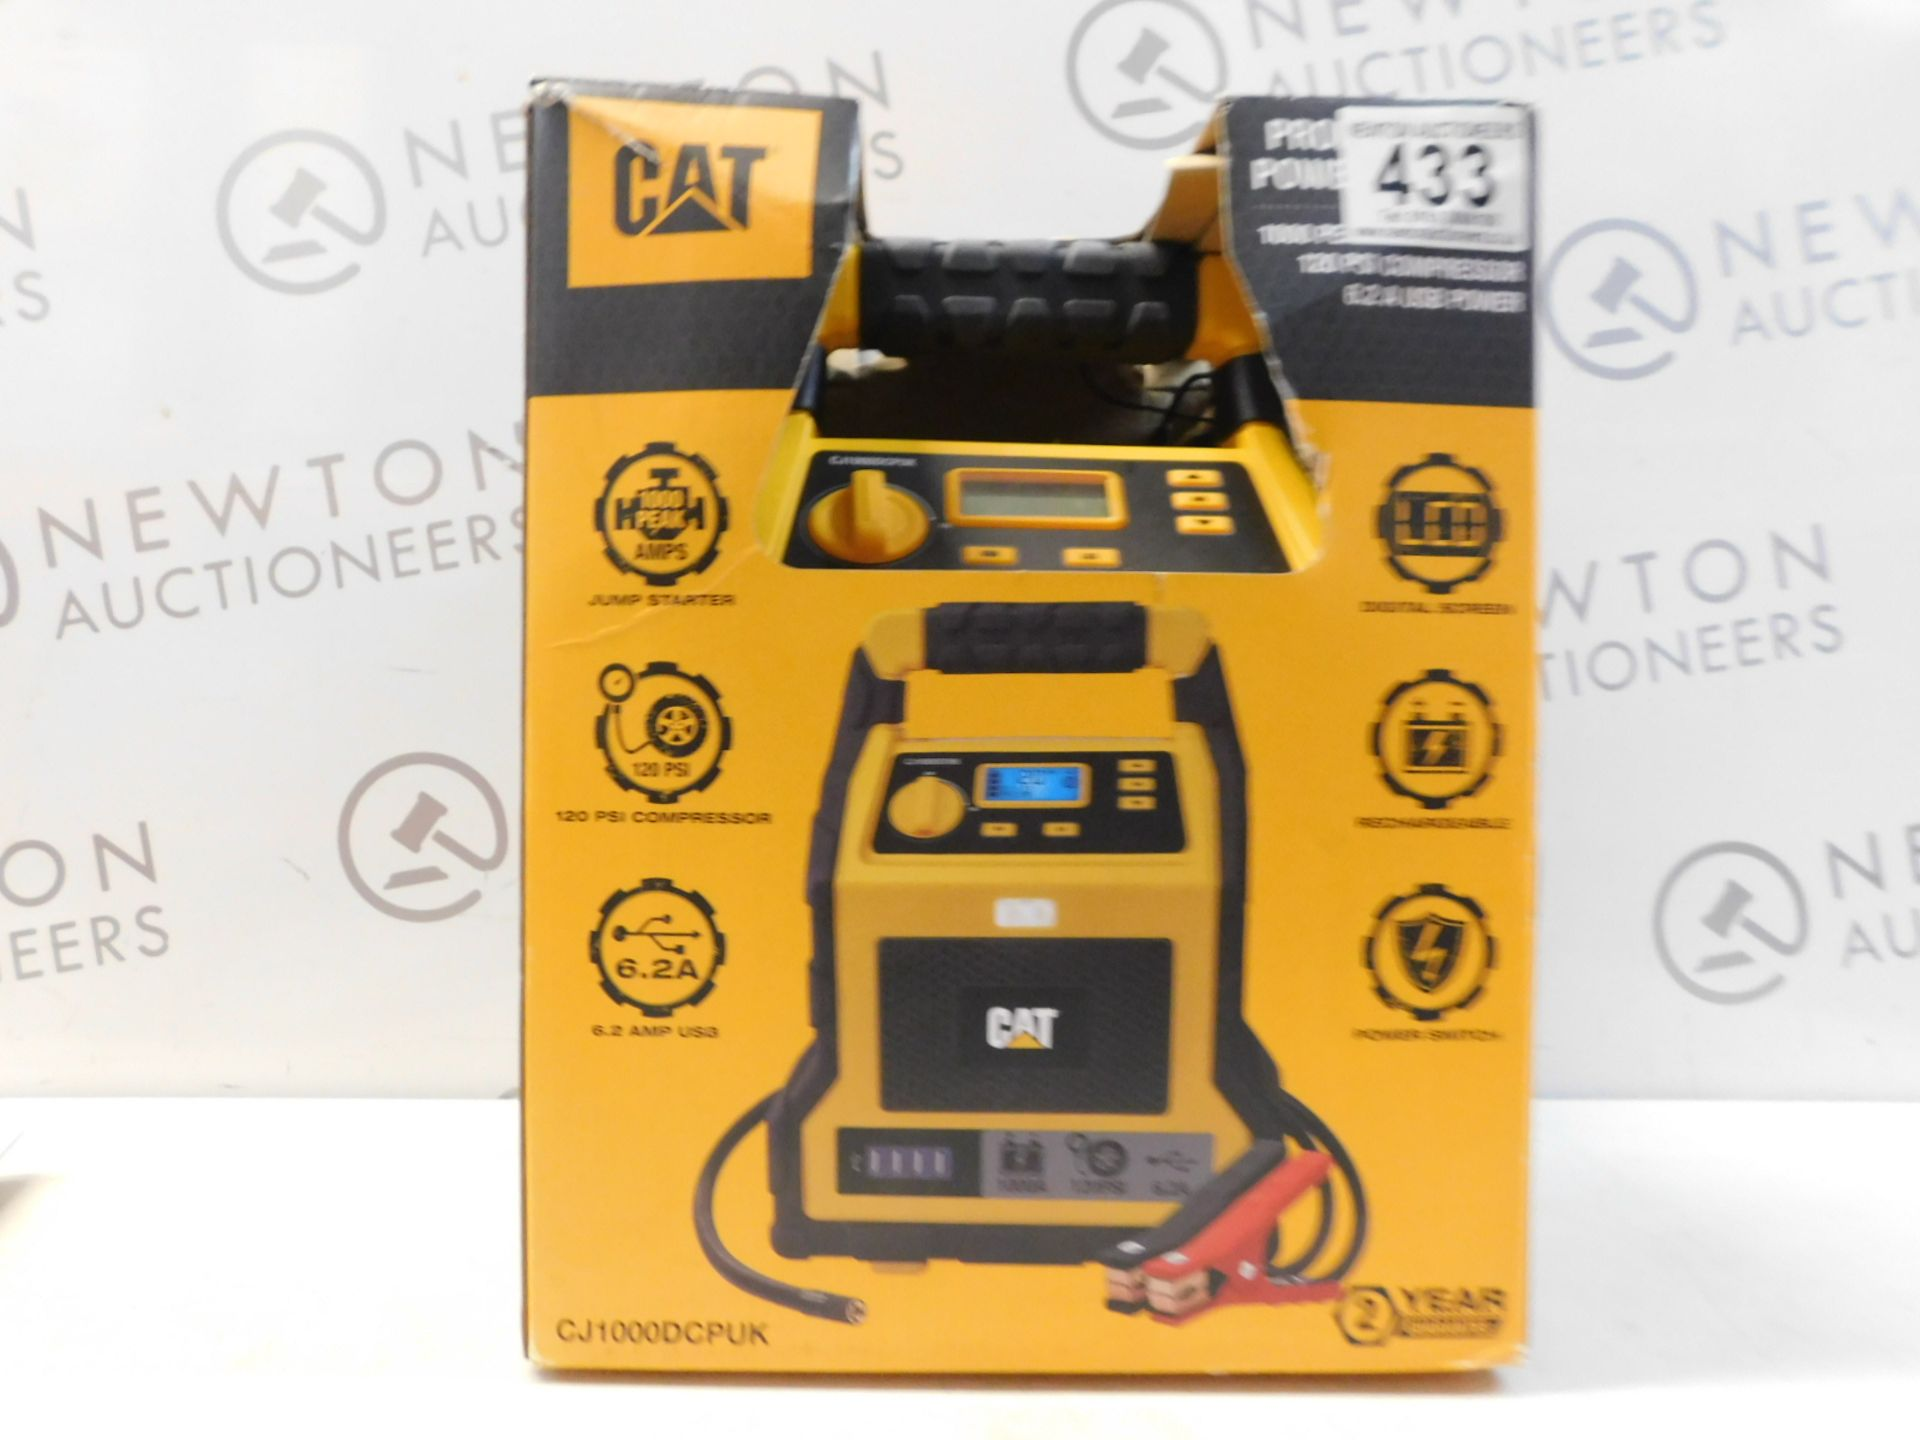 Lot 433 - 1 BOXED CAT 3-IN-1 PROFESSIONAL POWERSTATION WITH JUMP STARTER, USB & COMPRESSOR RRP £129.99